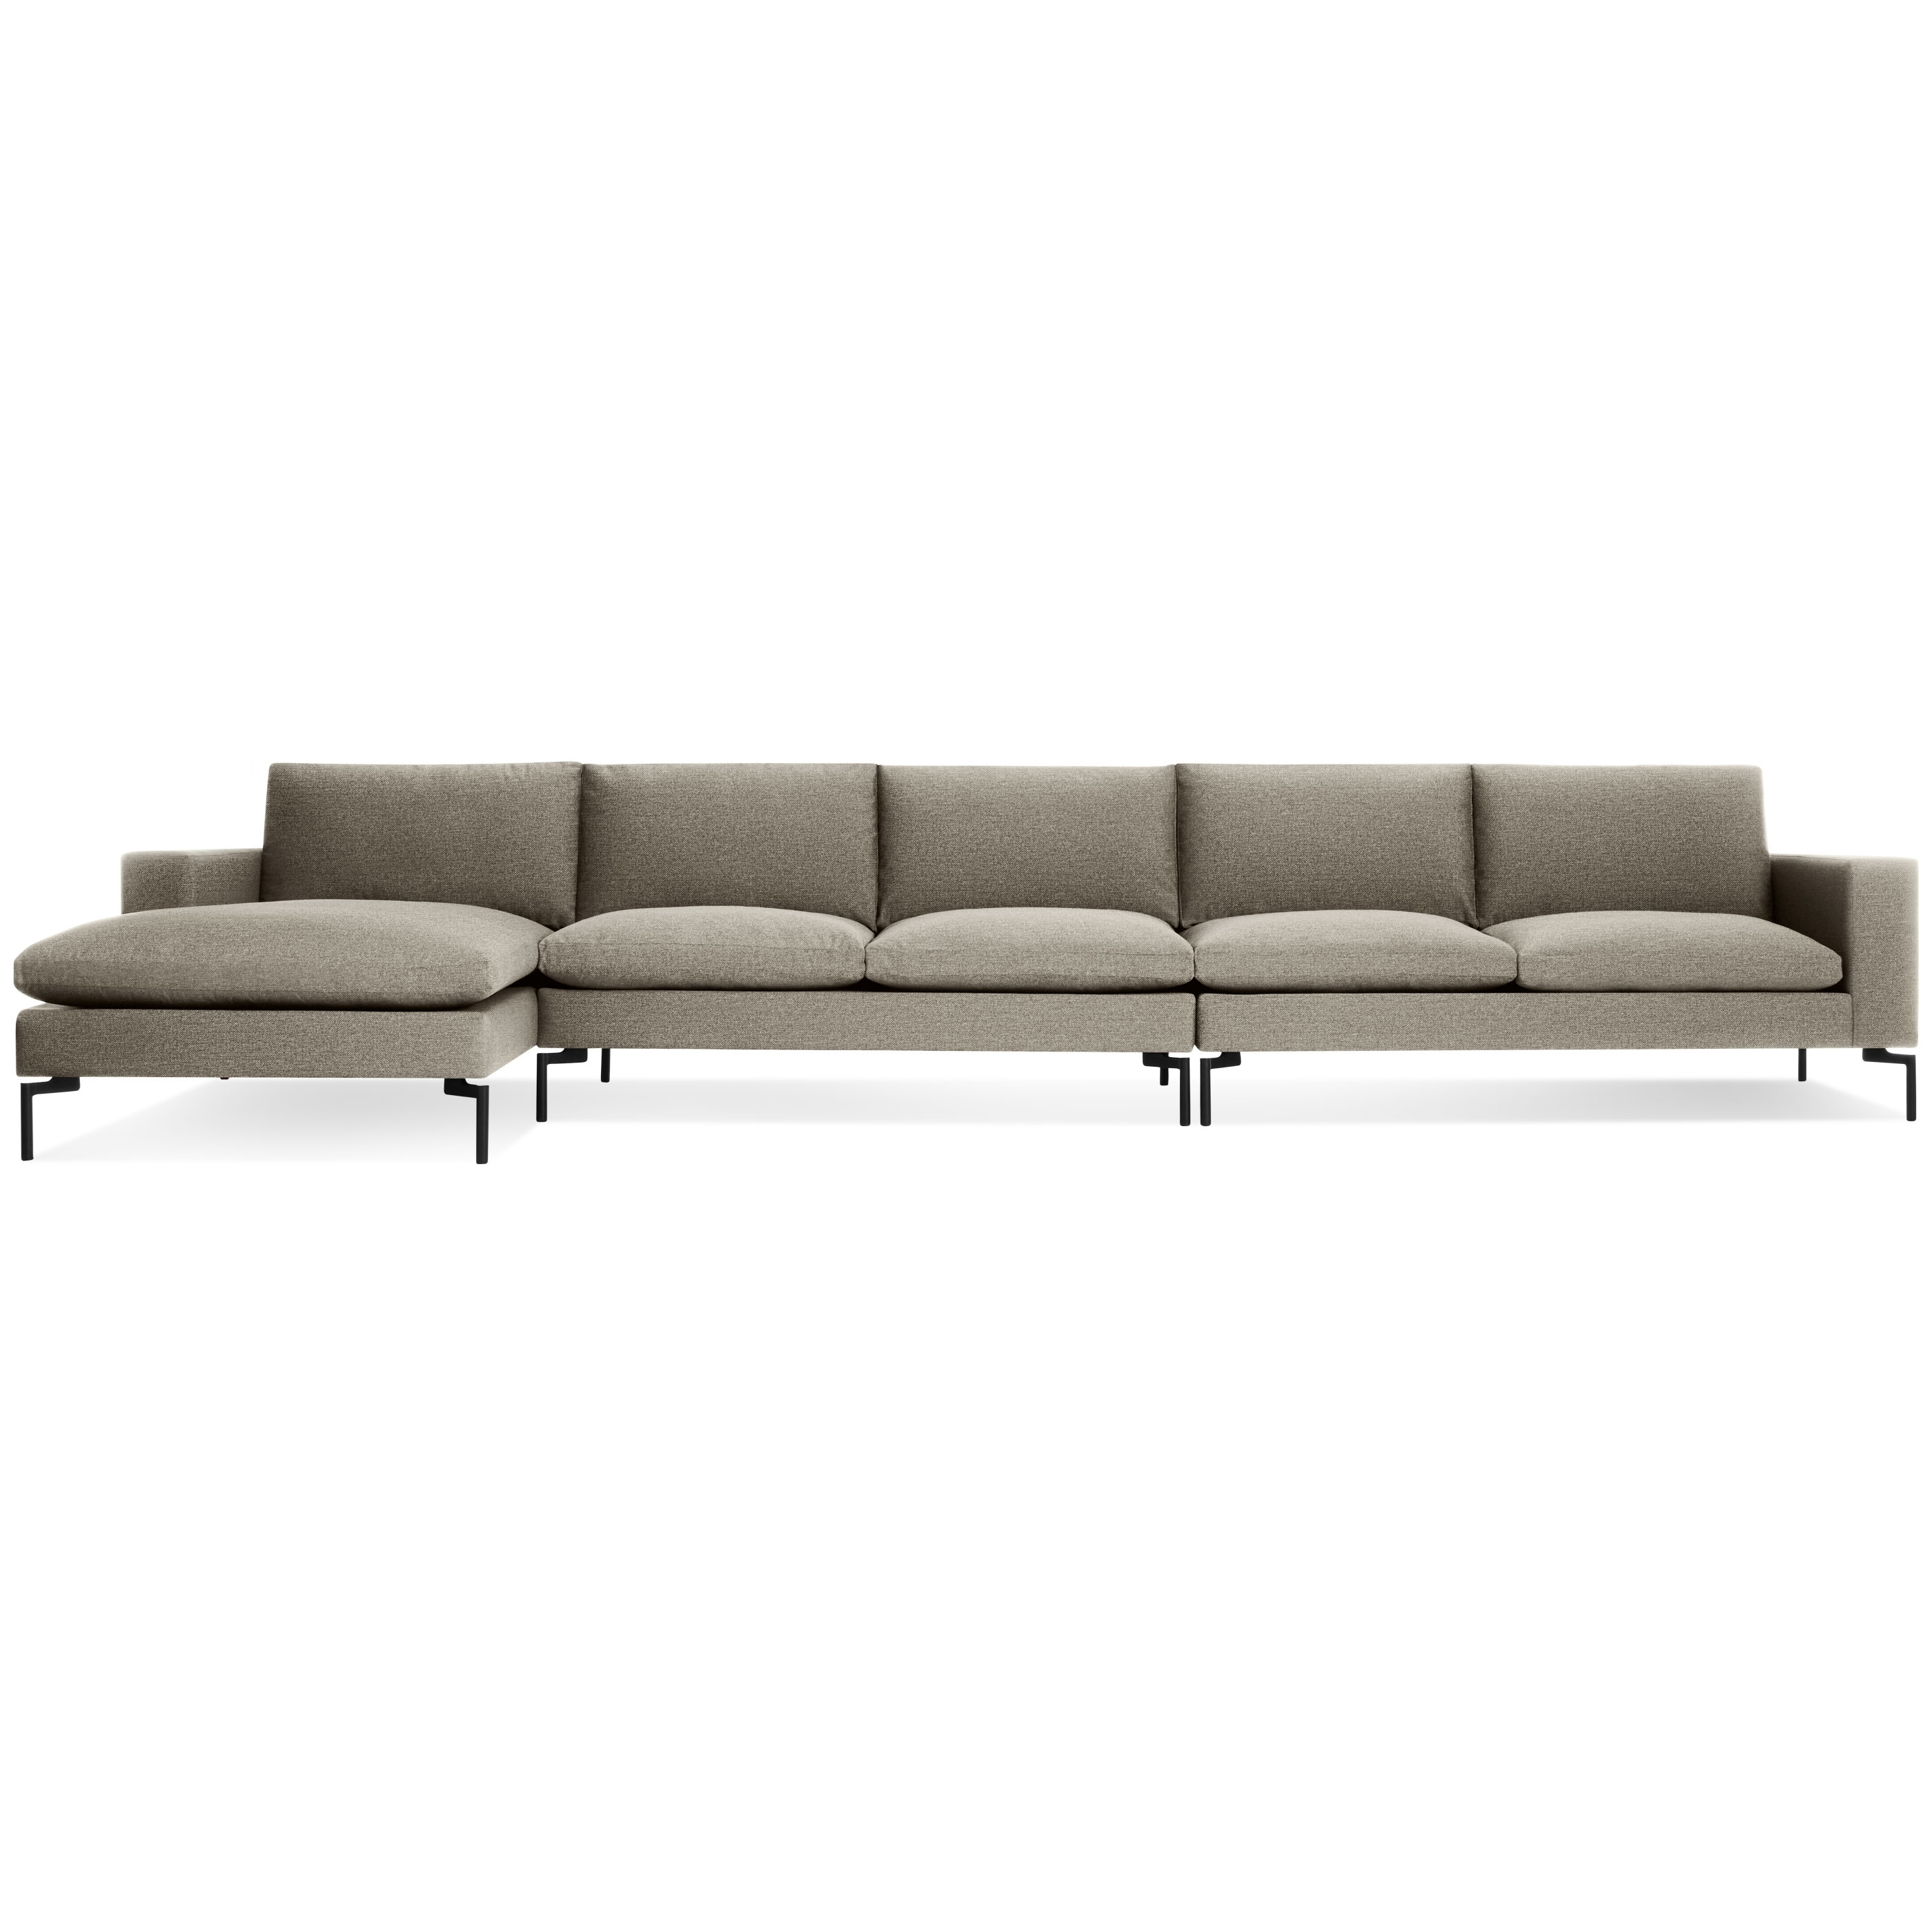 Widely Used New Standard Medium Sectional Sofa – Modern Sectional Sofas (View 15 of 20)